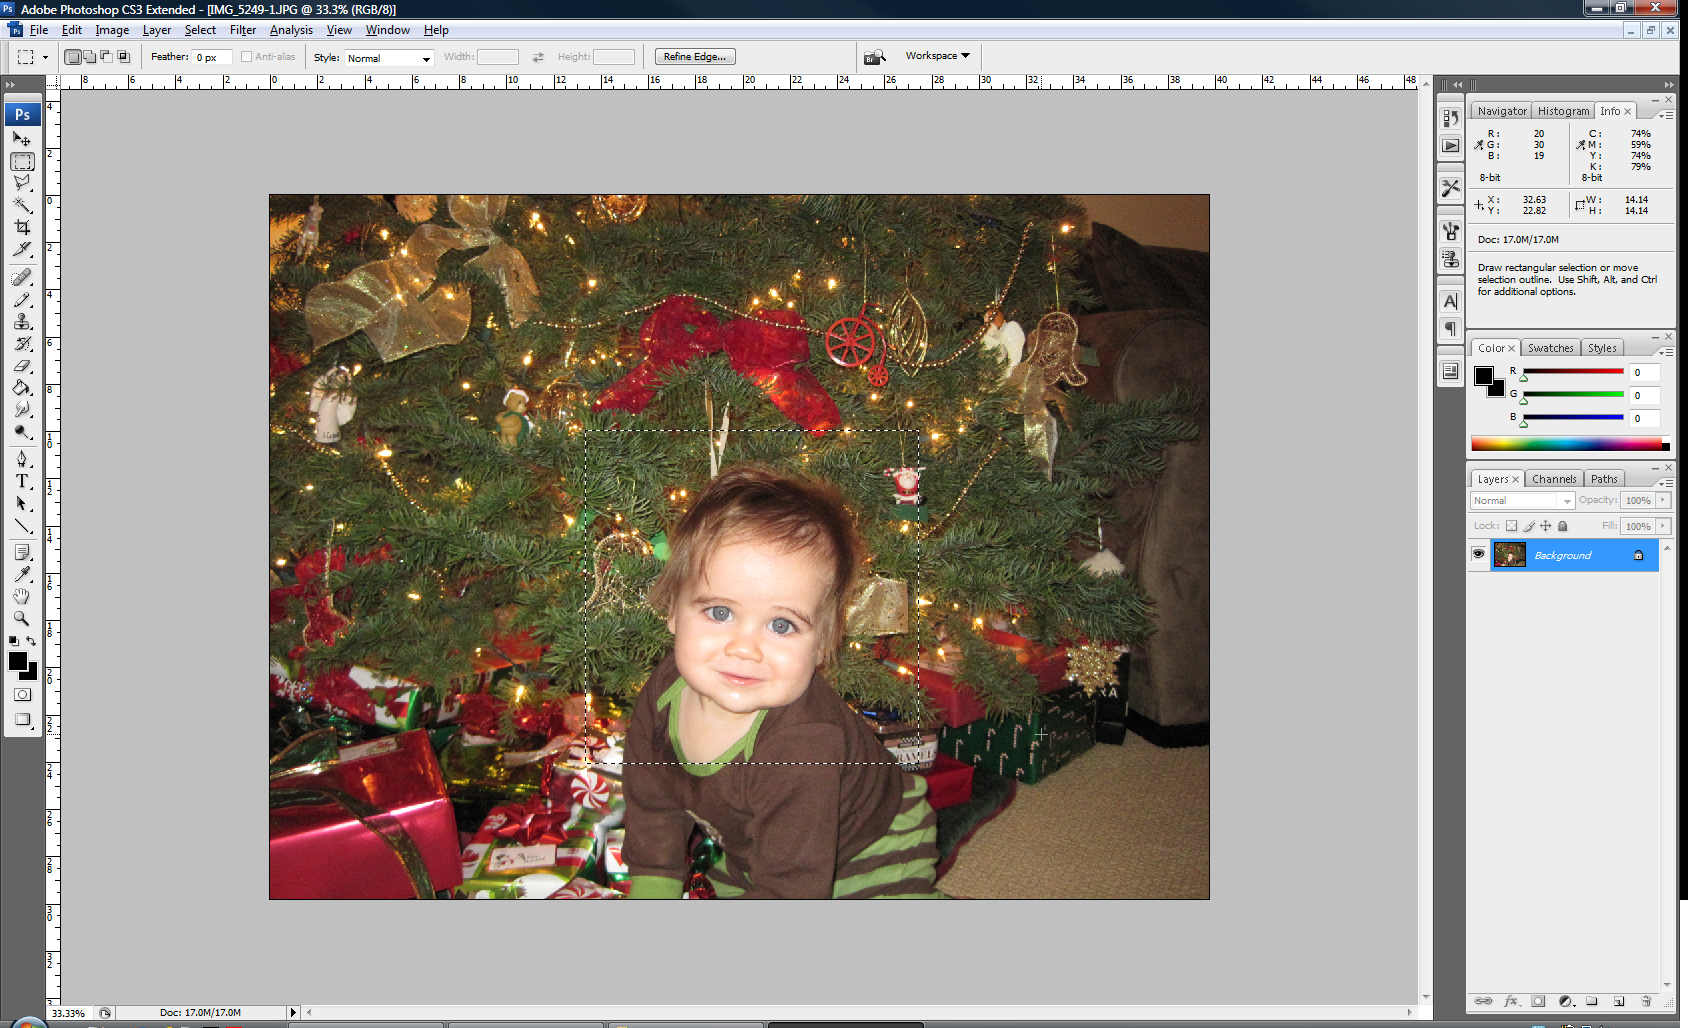 how to move a portion of image in photoshop